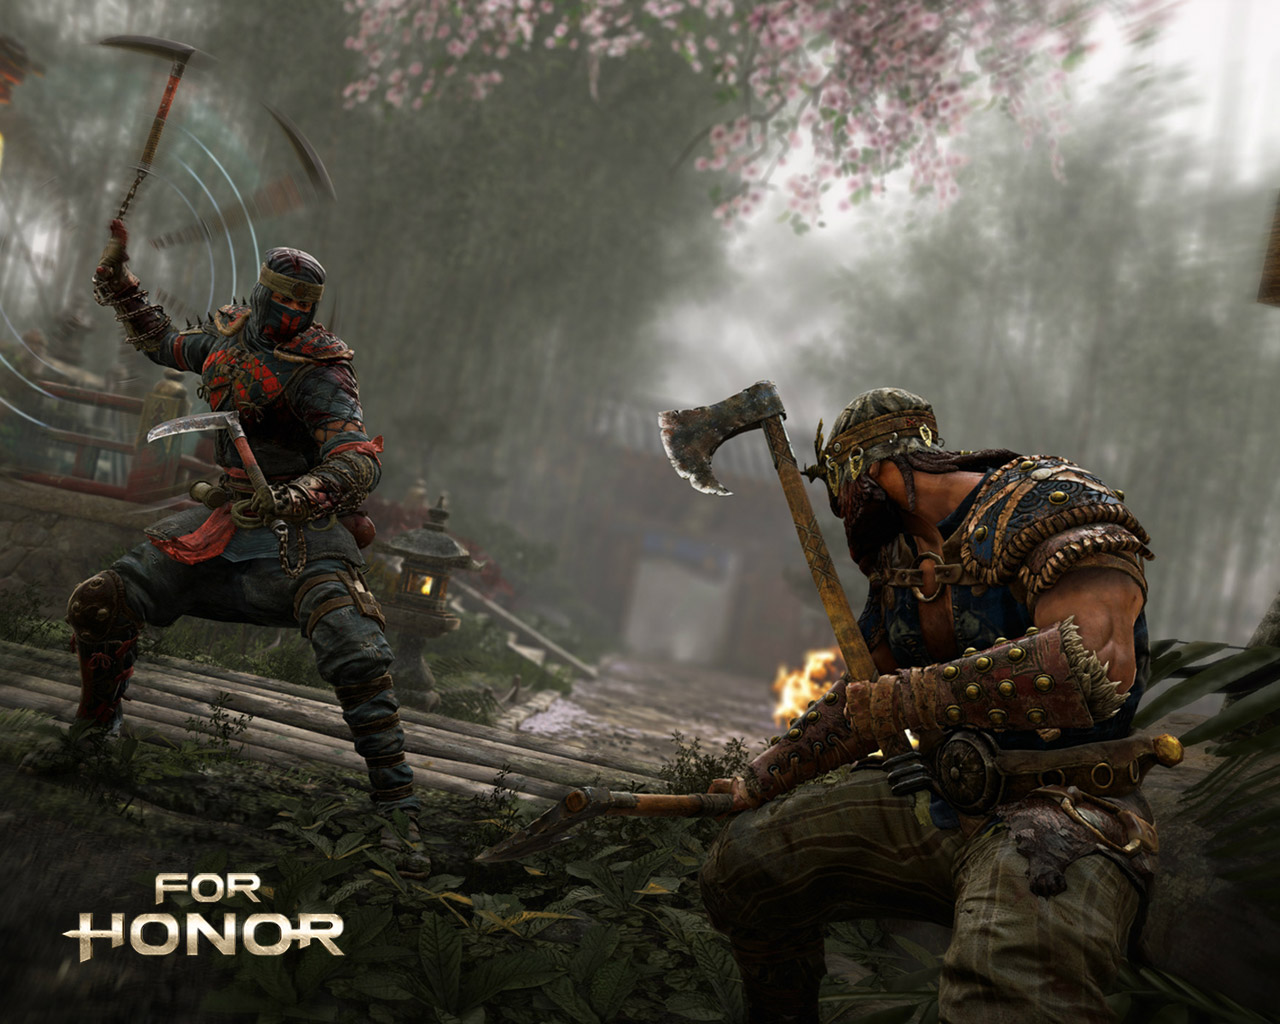 Free For Honor Wallpaper in 1280x1024